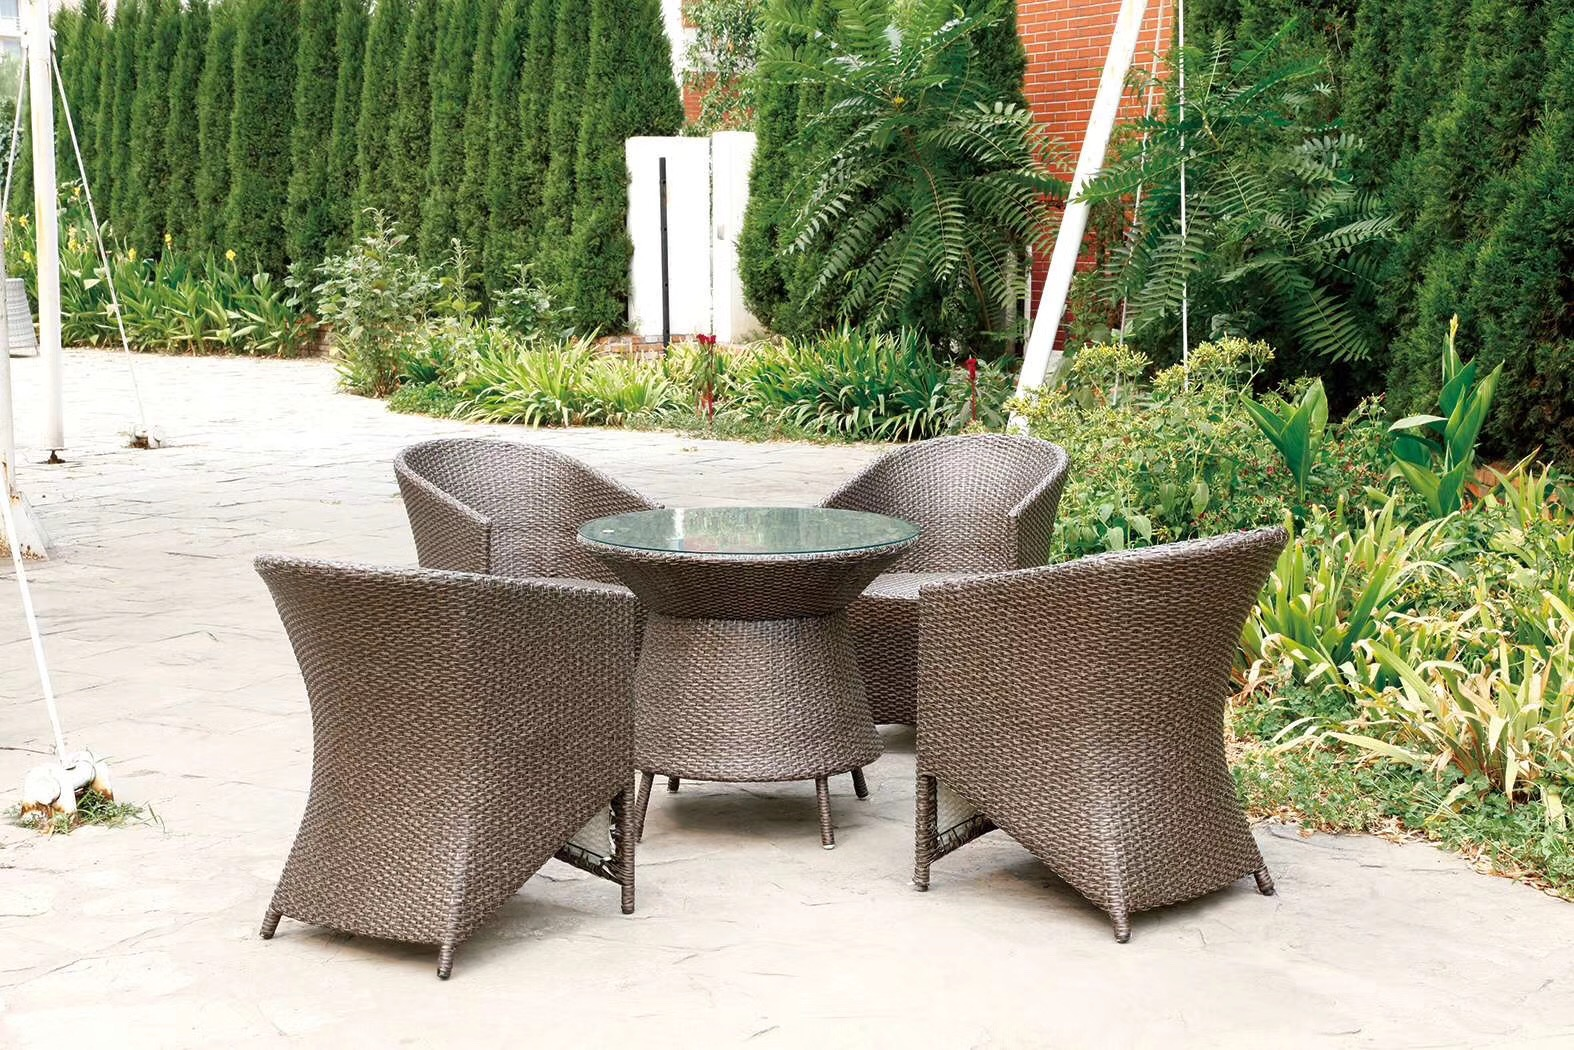 D-15 DRAK GRAY( 4+1 SET) 32 INCH TABLE ROUND